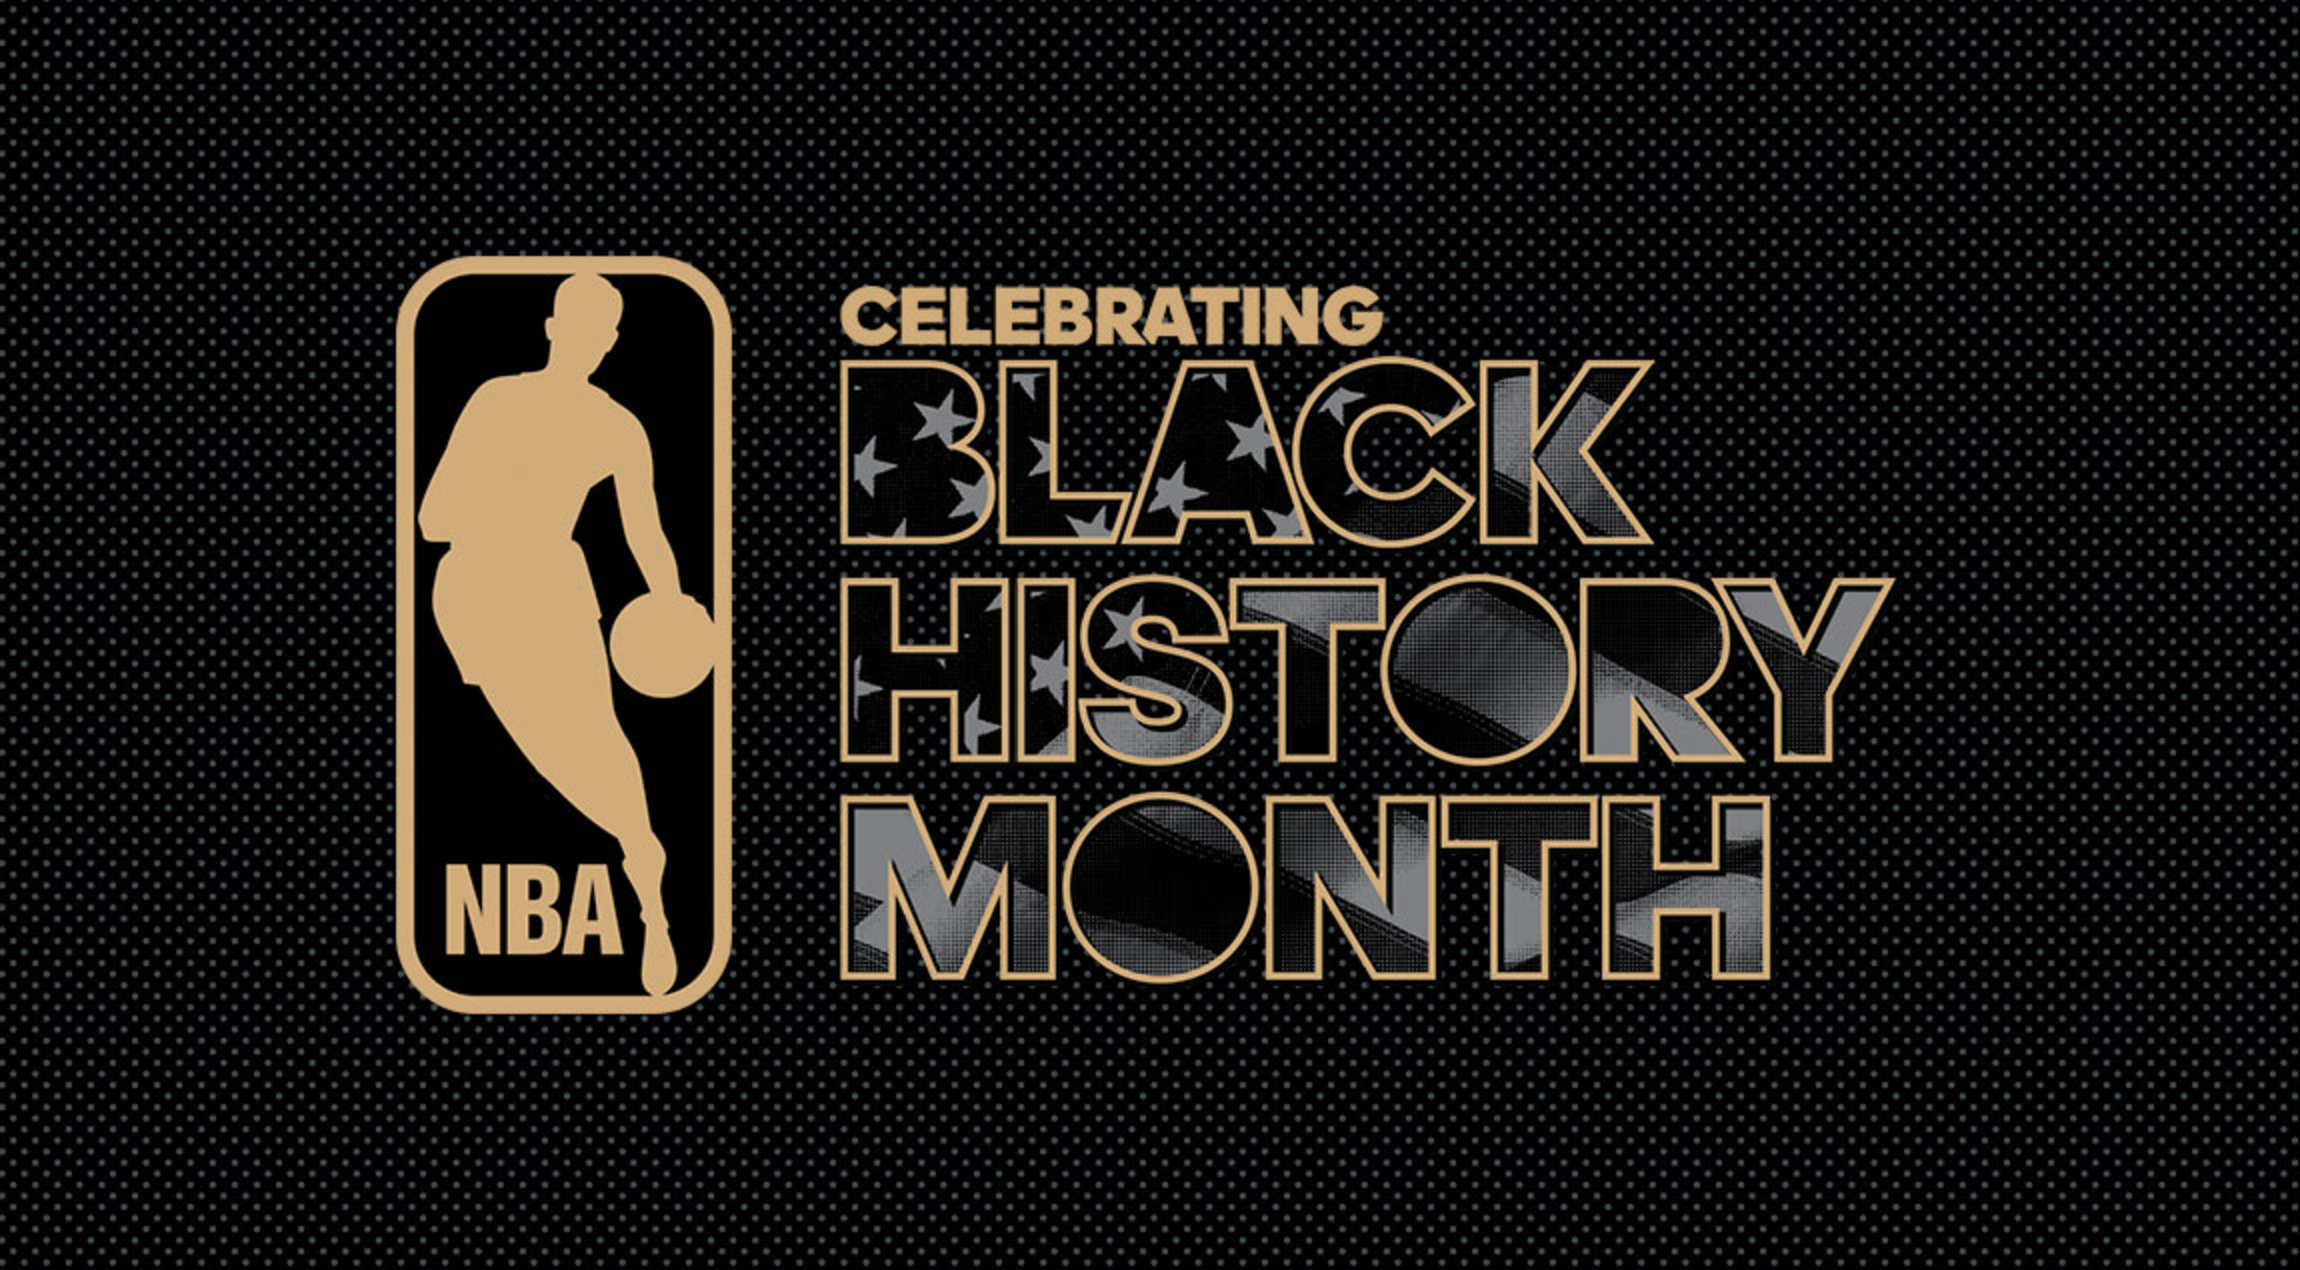 sacramento kings celebrate black history month with special entertainment  exhibits and